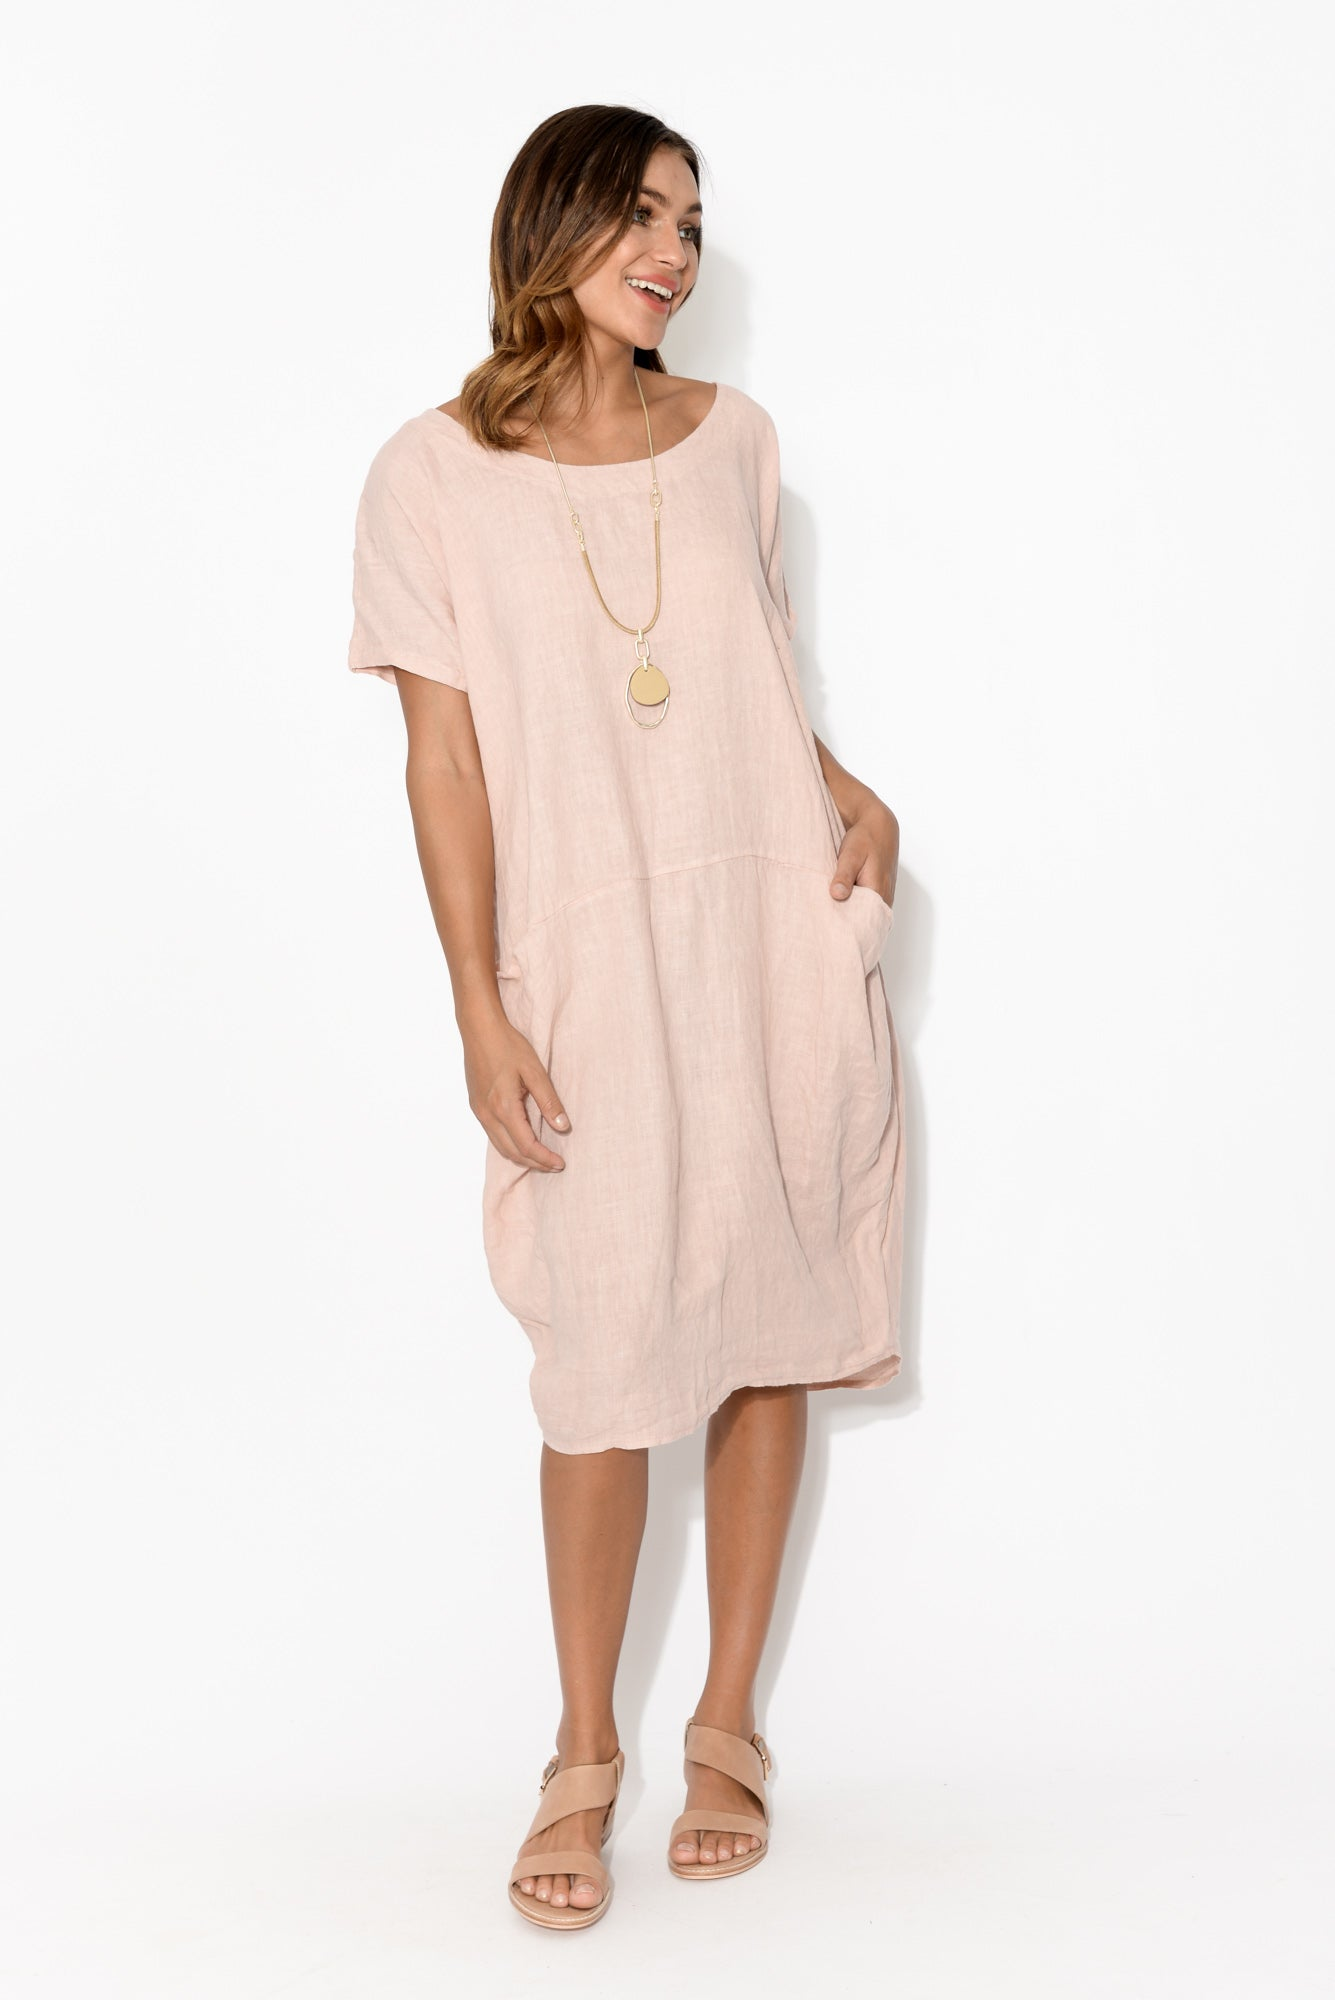 Ella Blush Linen Dress